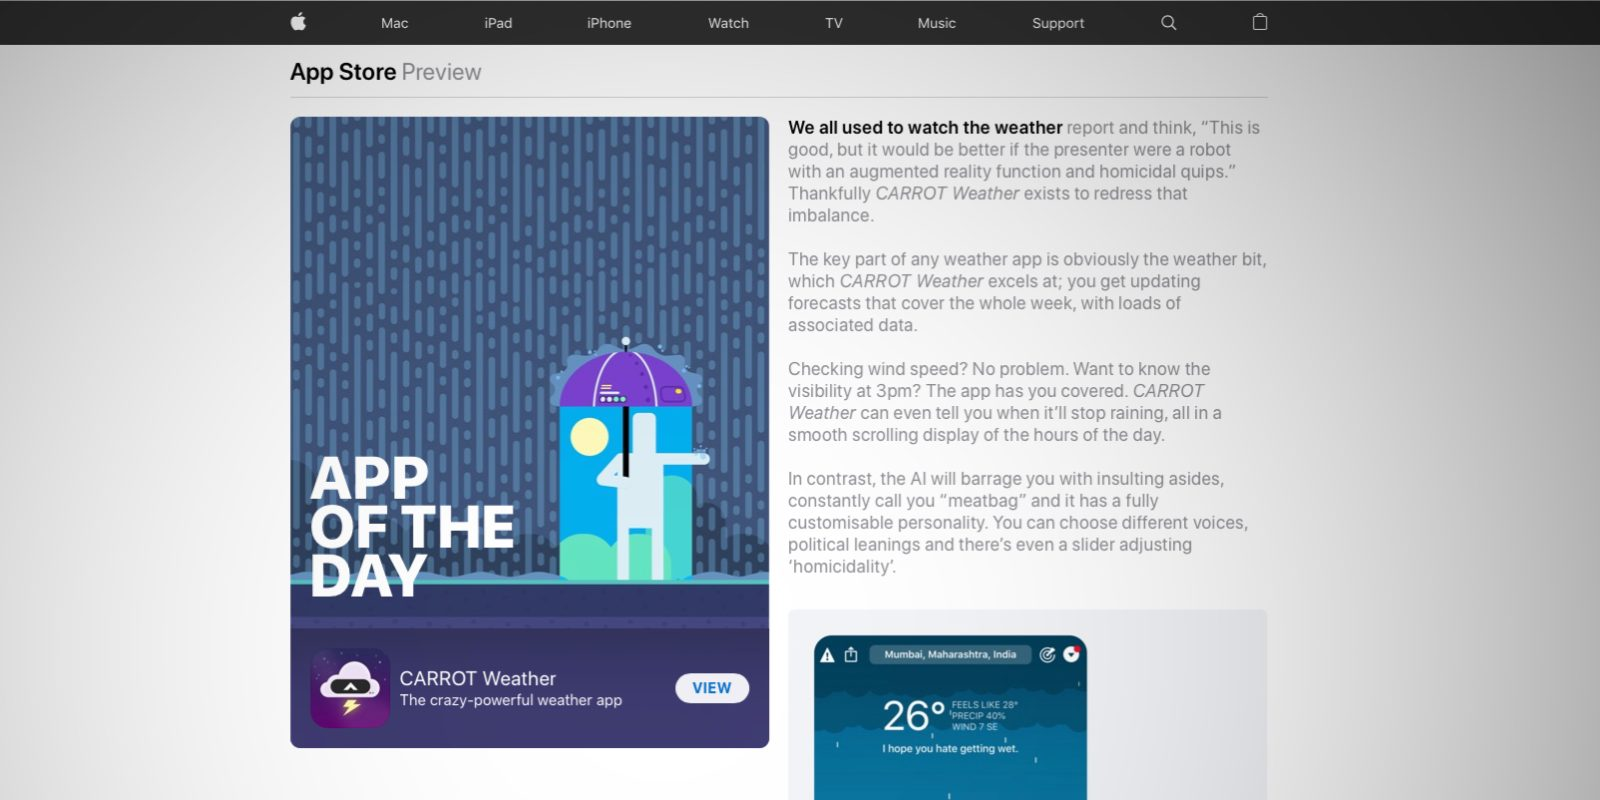 App Store Today editorial stories are now available on the web in full